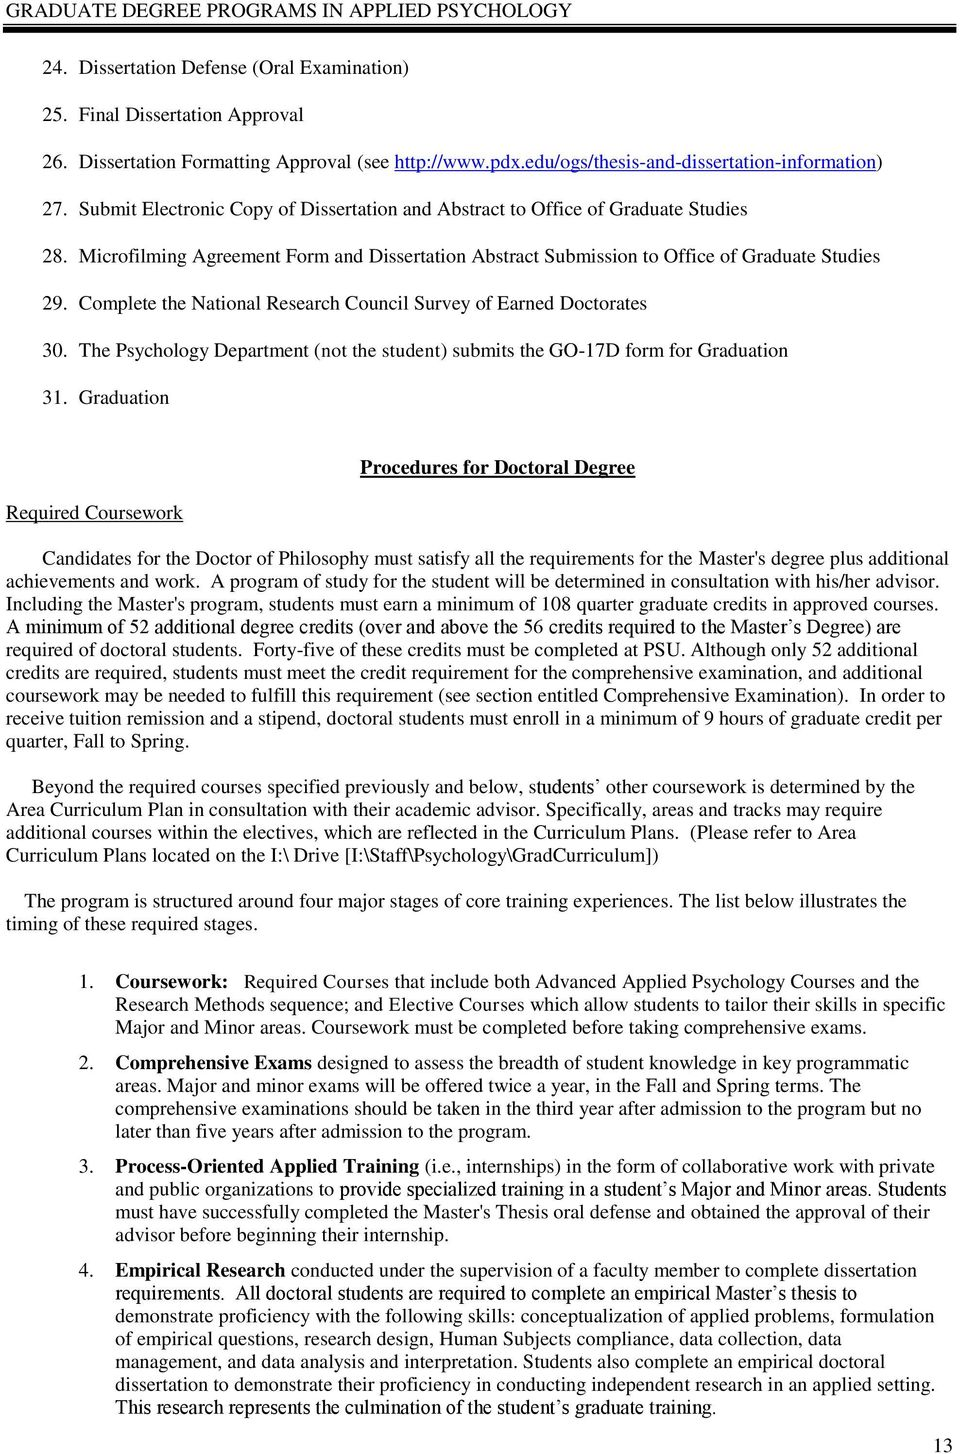 Microfilming Agreement Form and Dissertation Abstract Submission to Office of Graduate Studies 29. Complete the National Research Council Survey of Earned Doctorates 30.